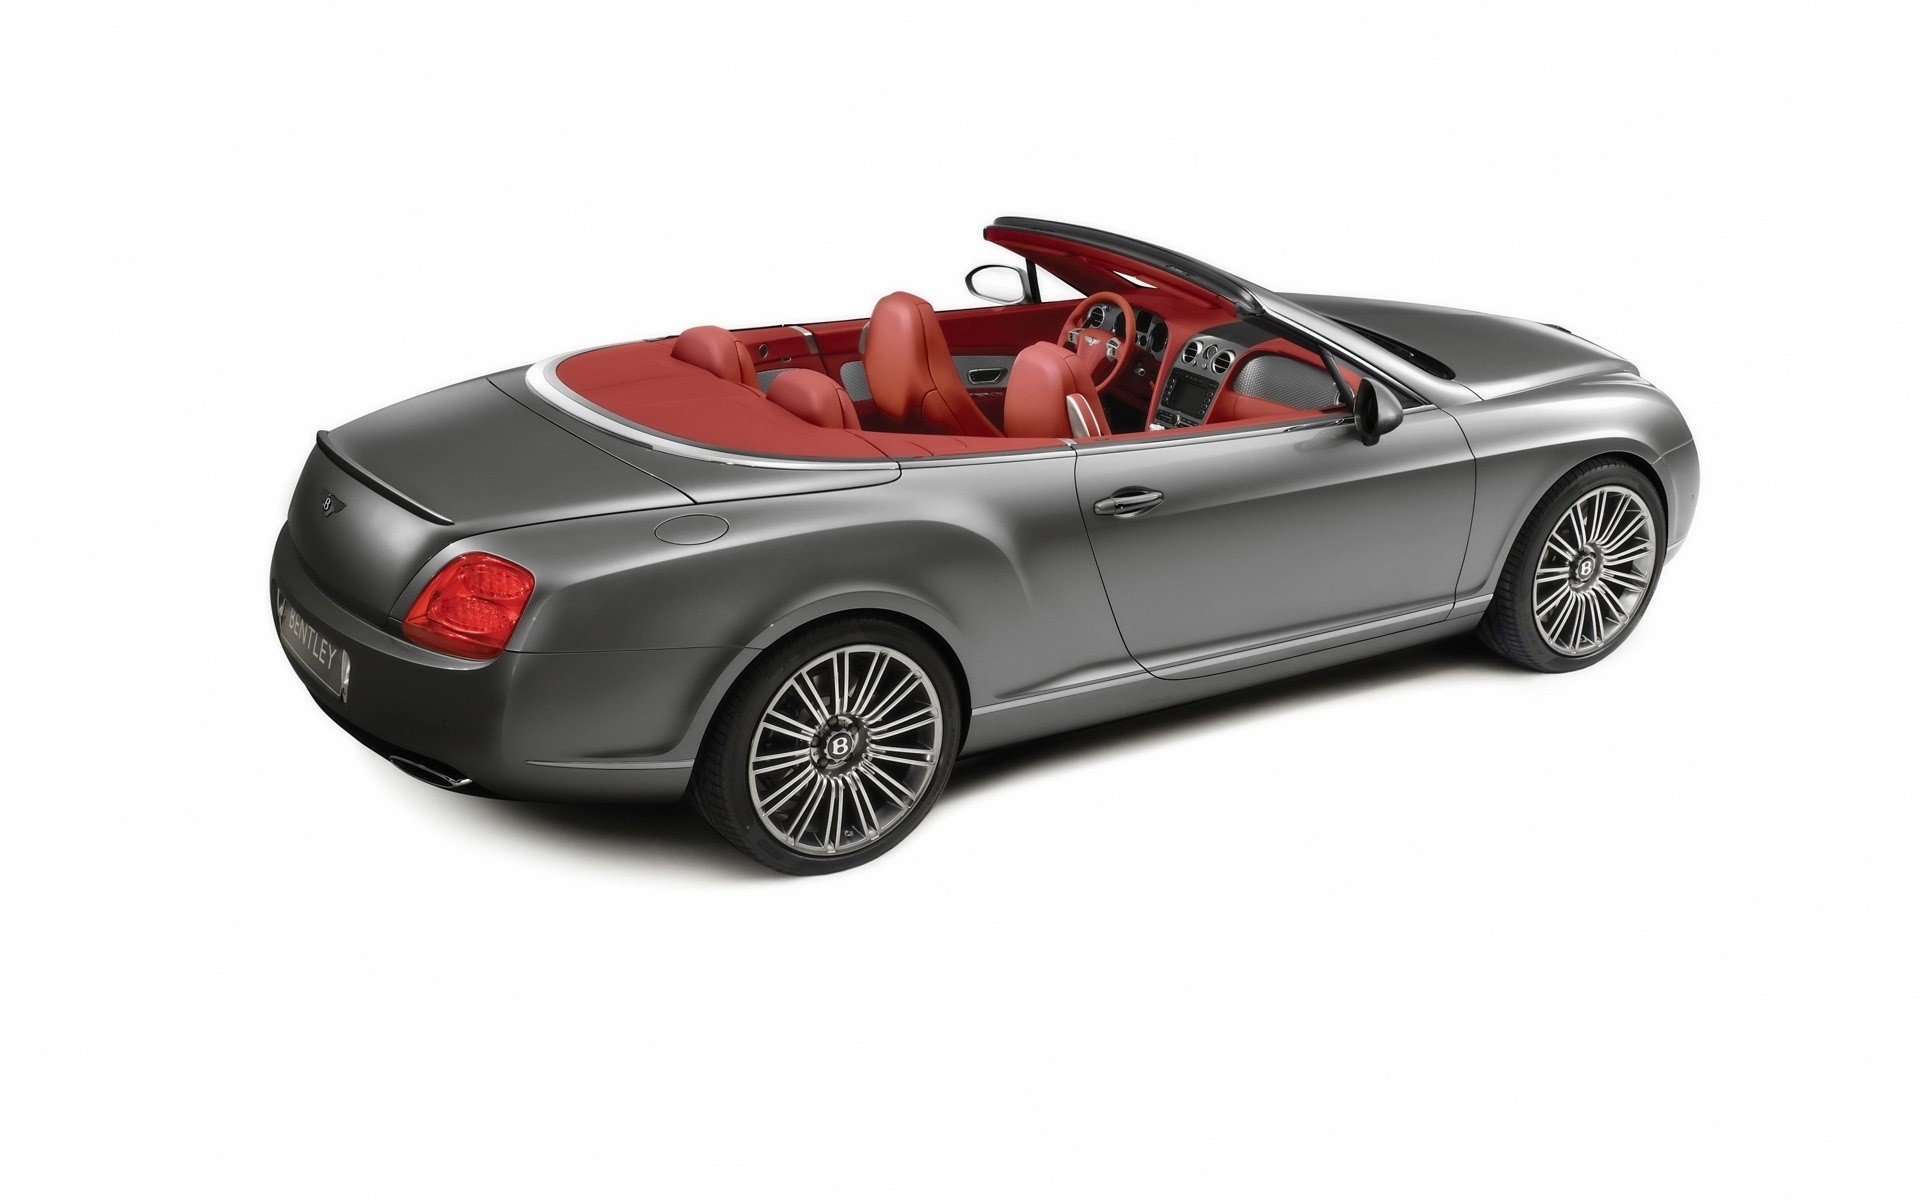 Bentley Continental GTC скорость Studio 2009